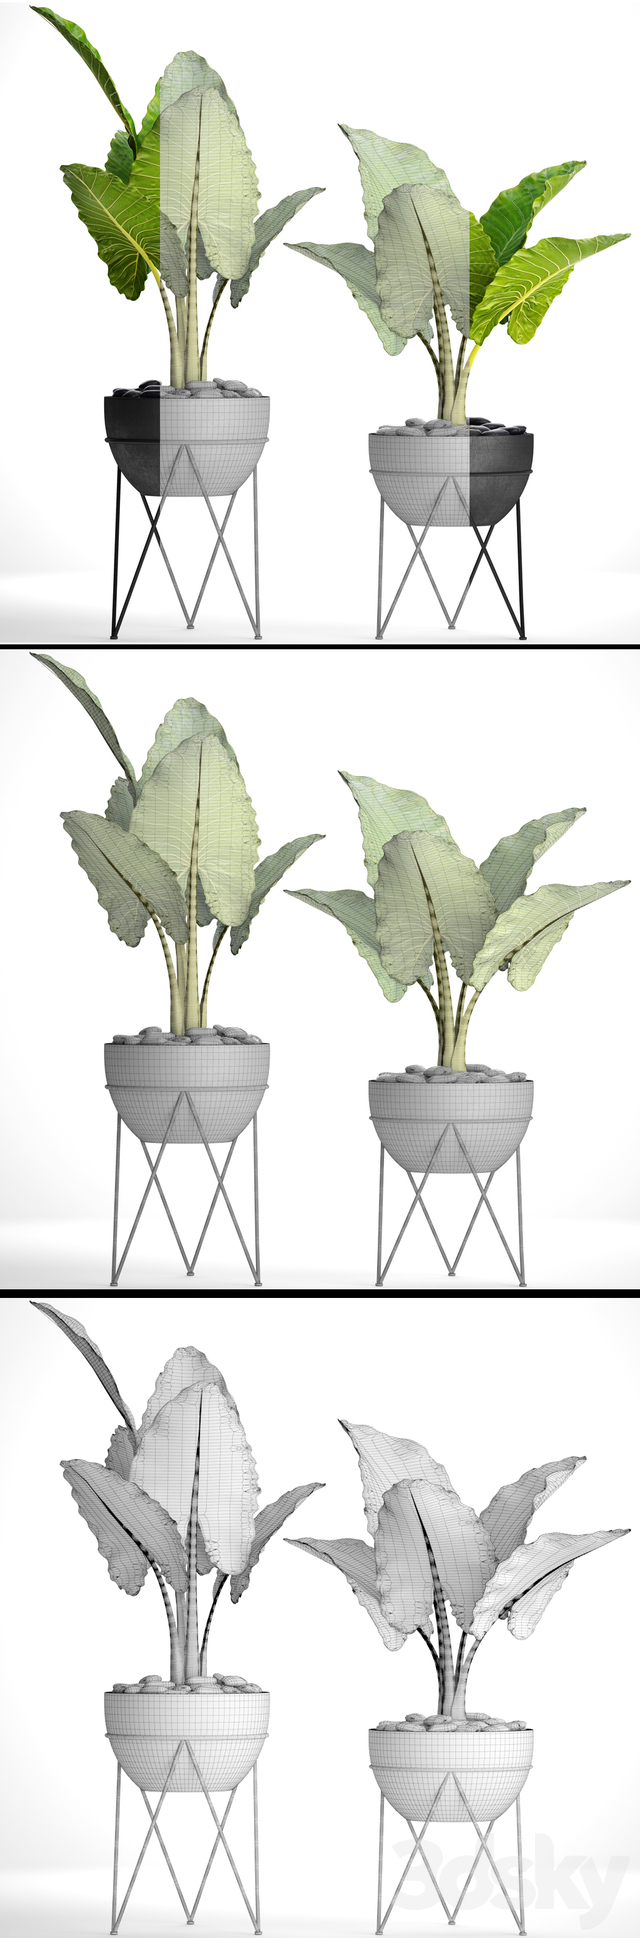 Collection of plants. Alocasia. 29